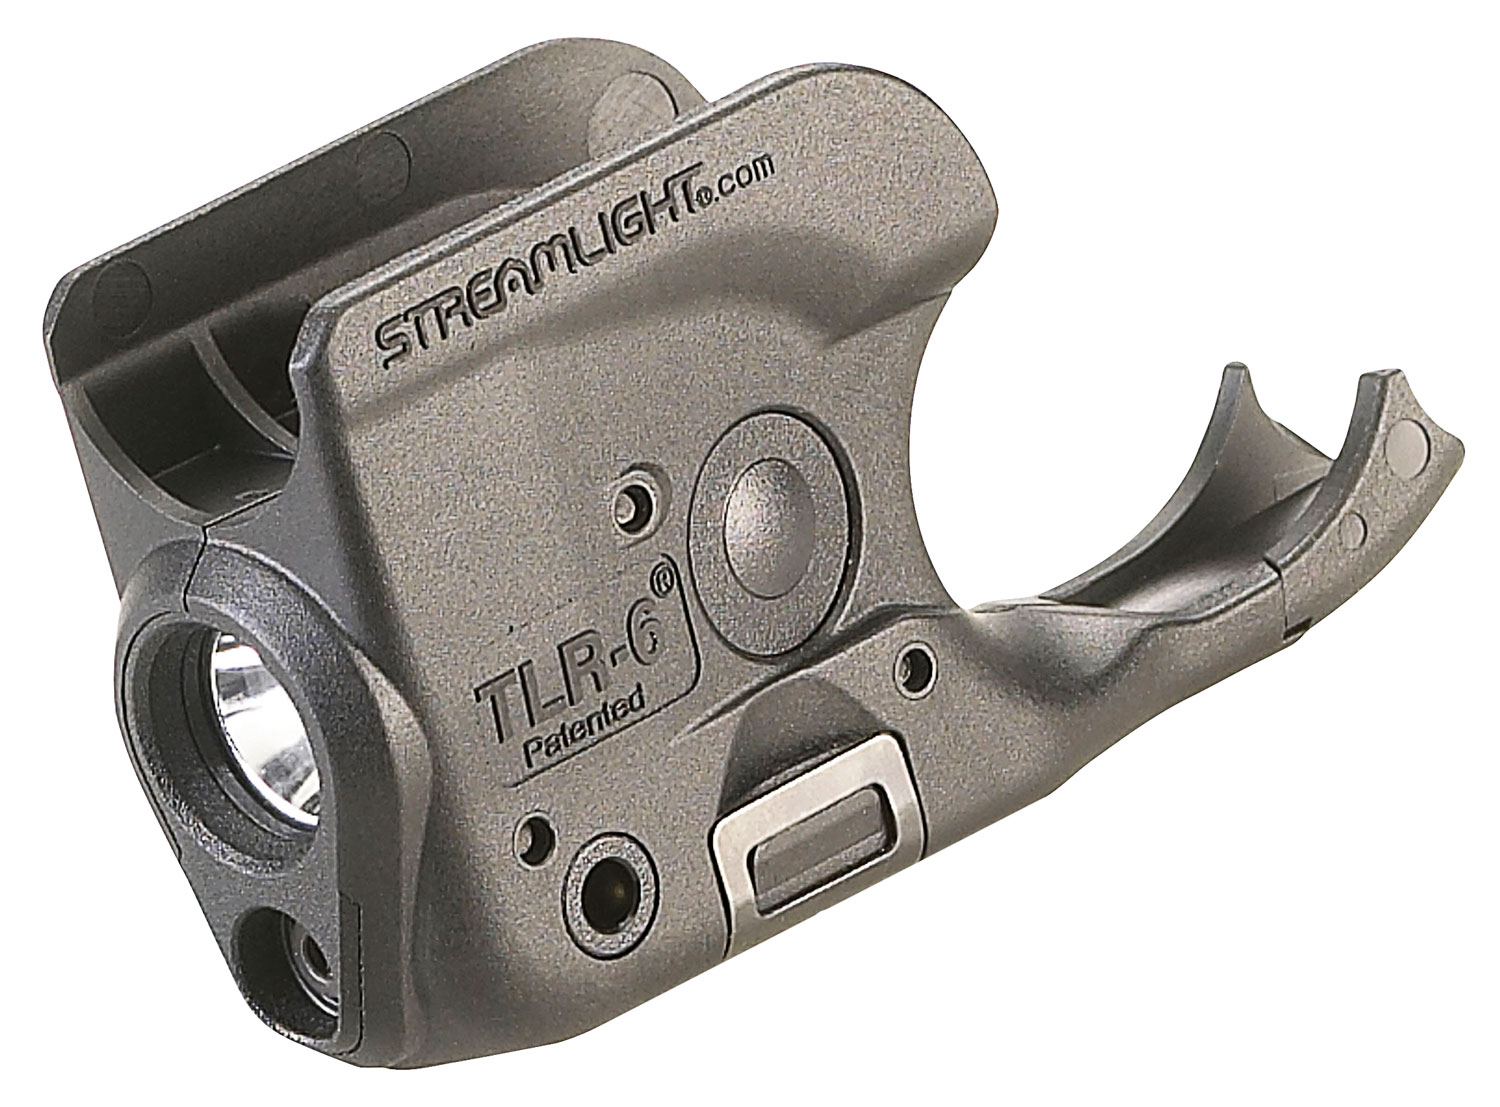 STL 69279  TLR6 WEAPONLIGHT 1911